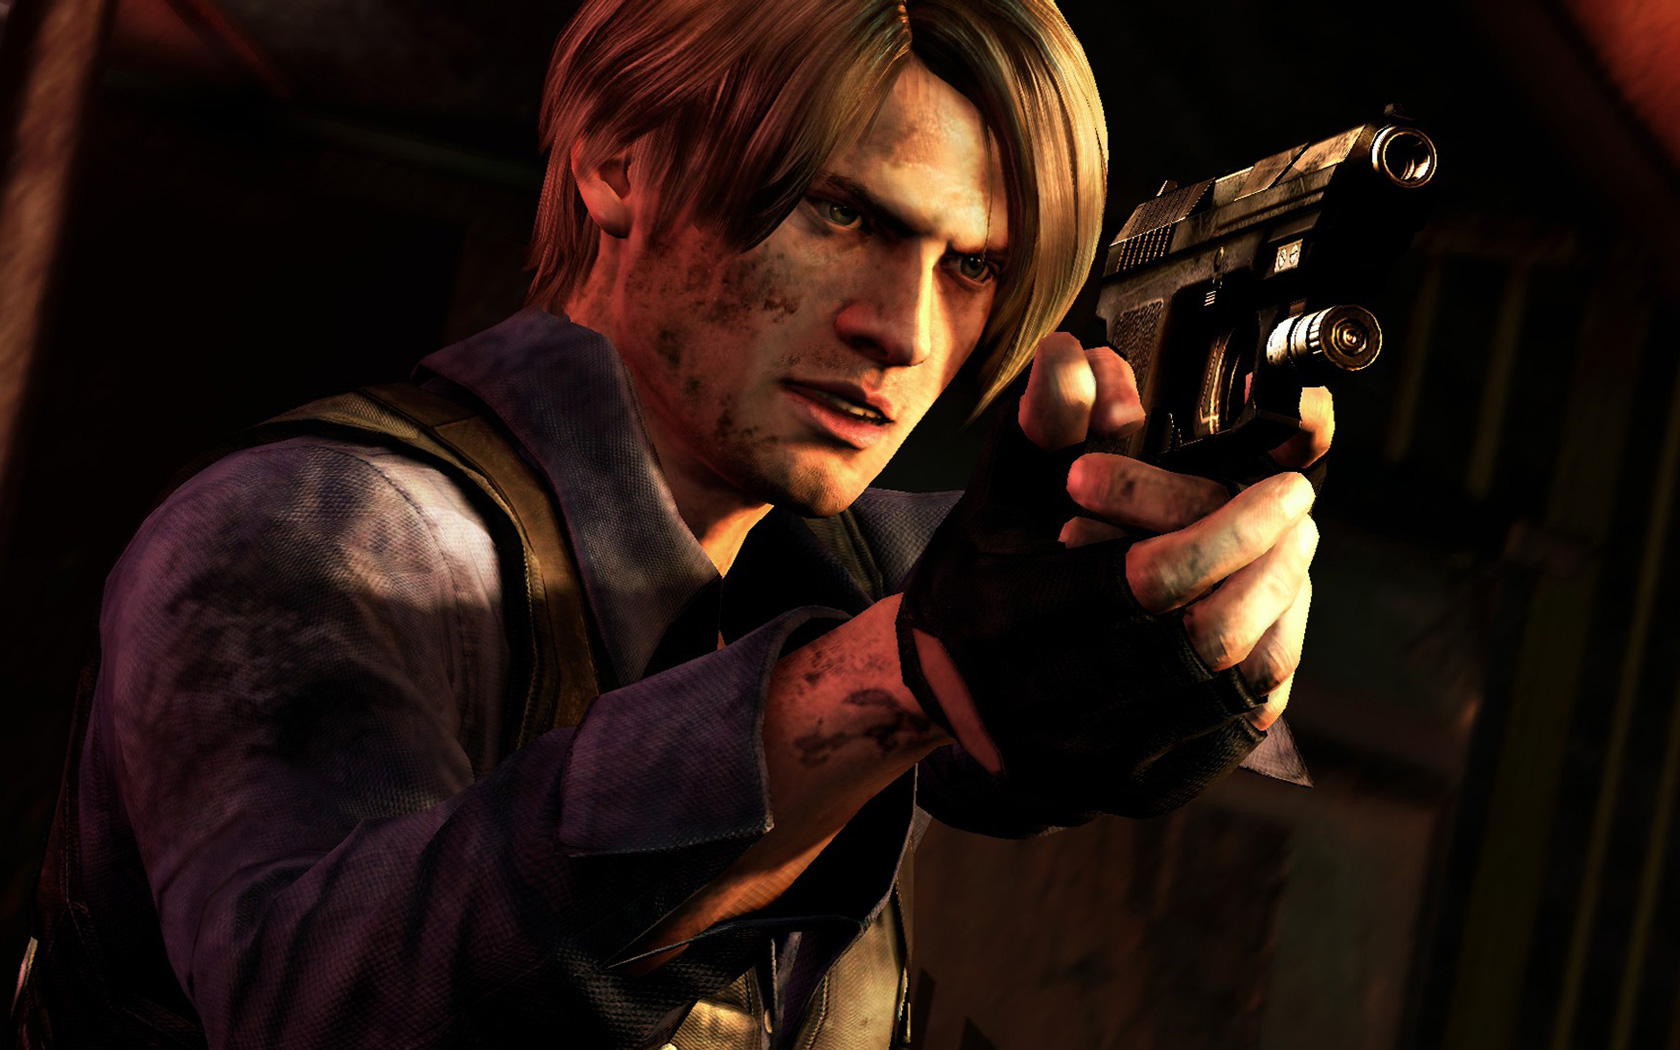 Free Resident Evil 6 Wallpaper In 1680x1050 Wallpaper Teahub Io